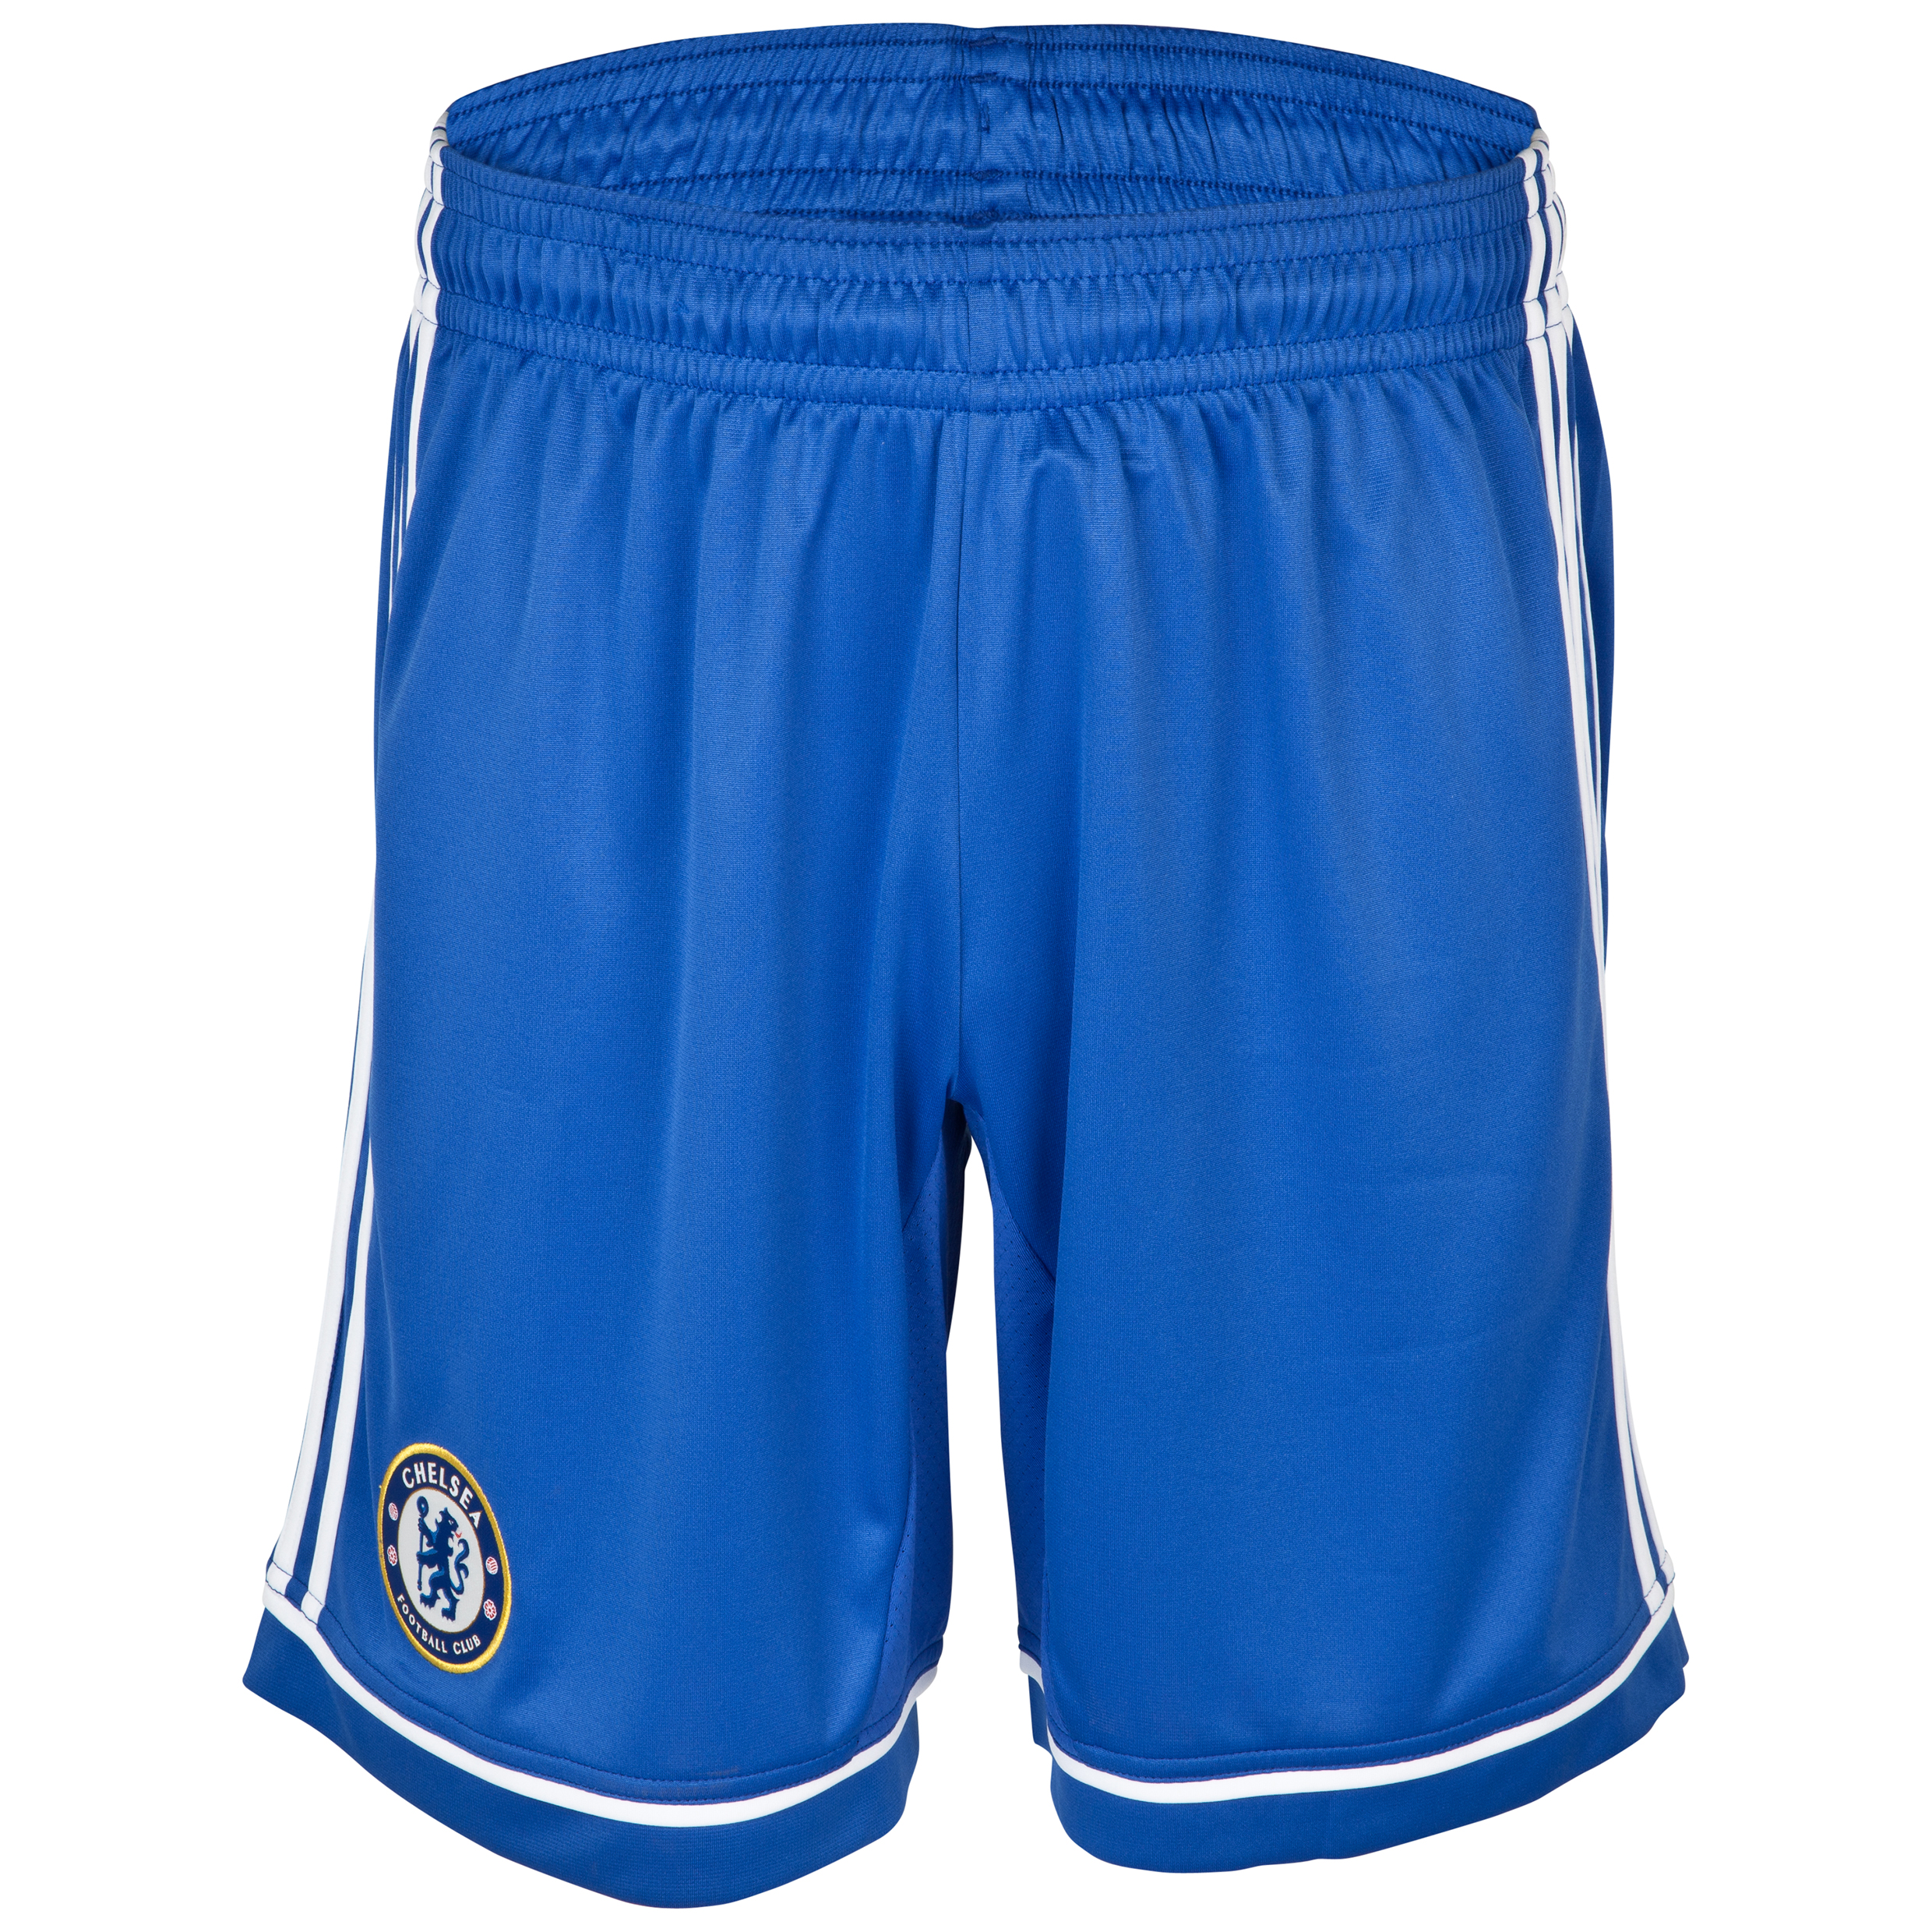 Chelsea Home Shorts 2013/14